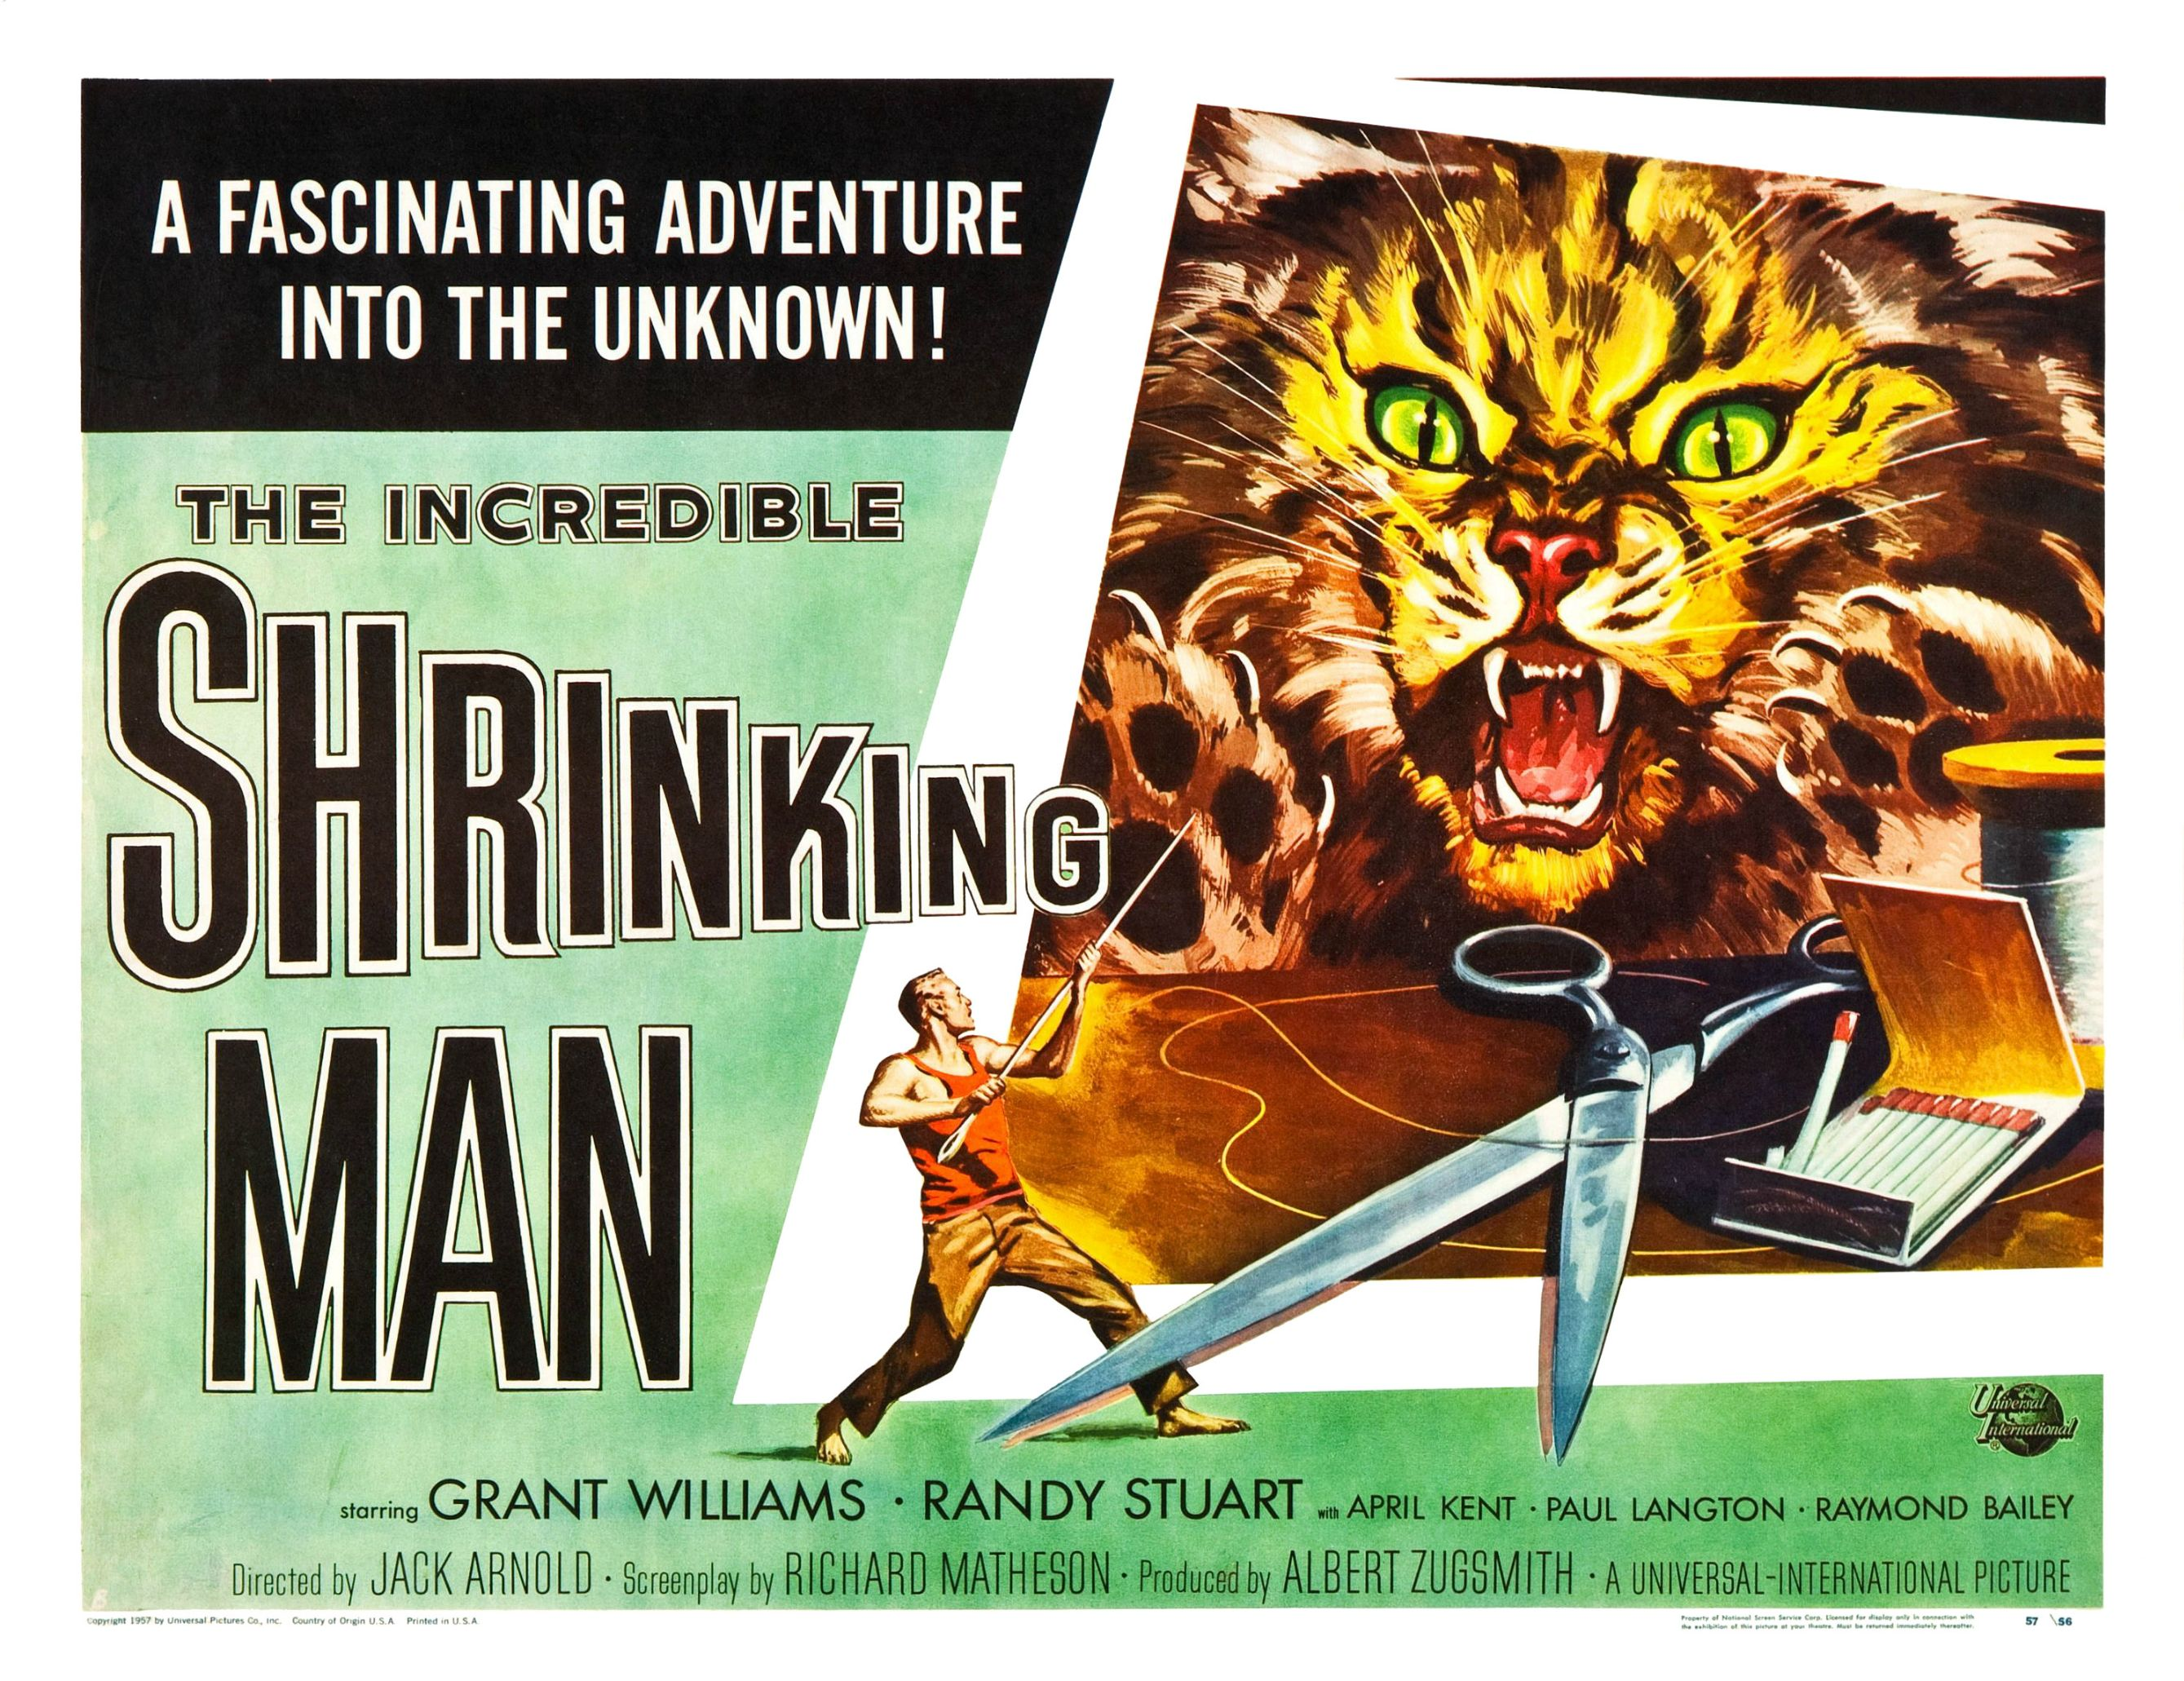 http://retromovieposter.com/wp-content/uploads/2015/04/1957-The-Incredible-Shrinking-Man.jpg Incredible Shrinking Man Poster